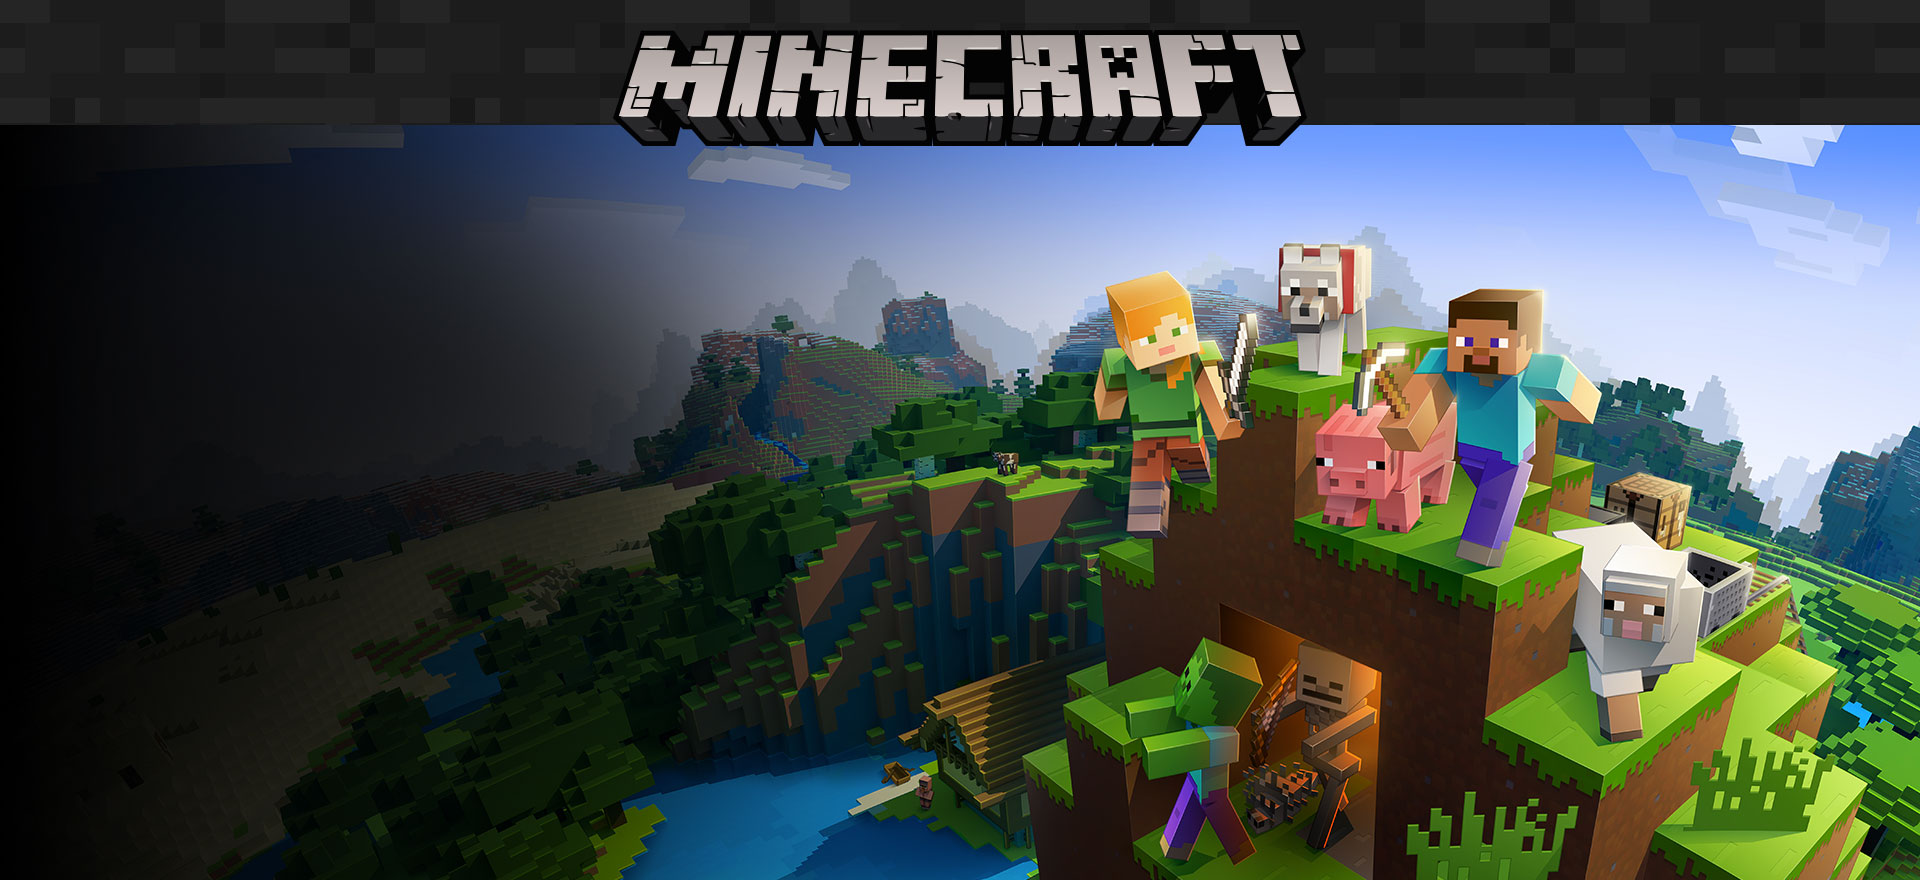 Minecraft: Editor de personagens